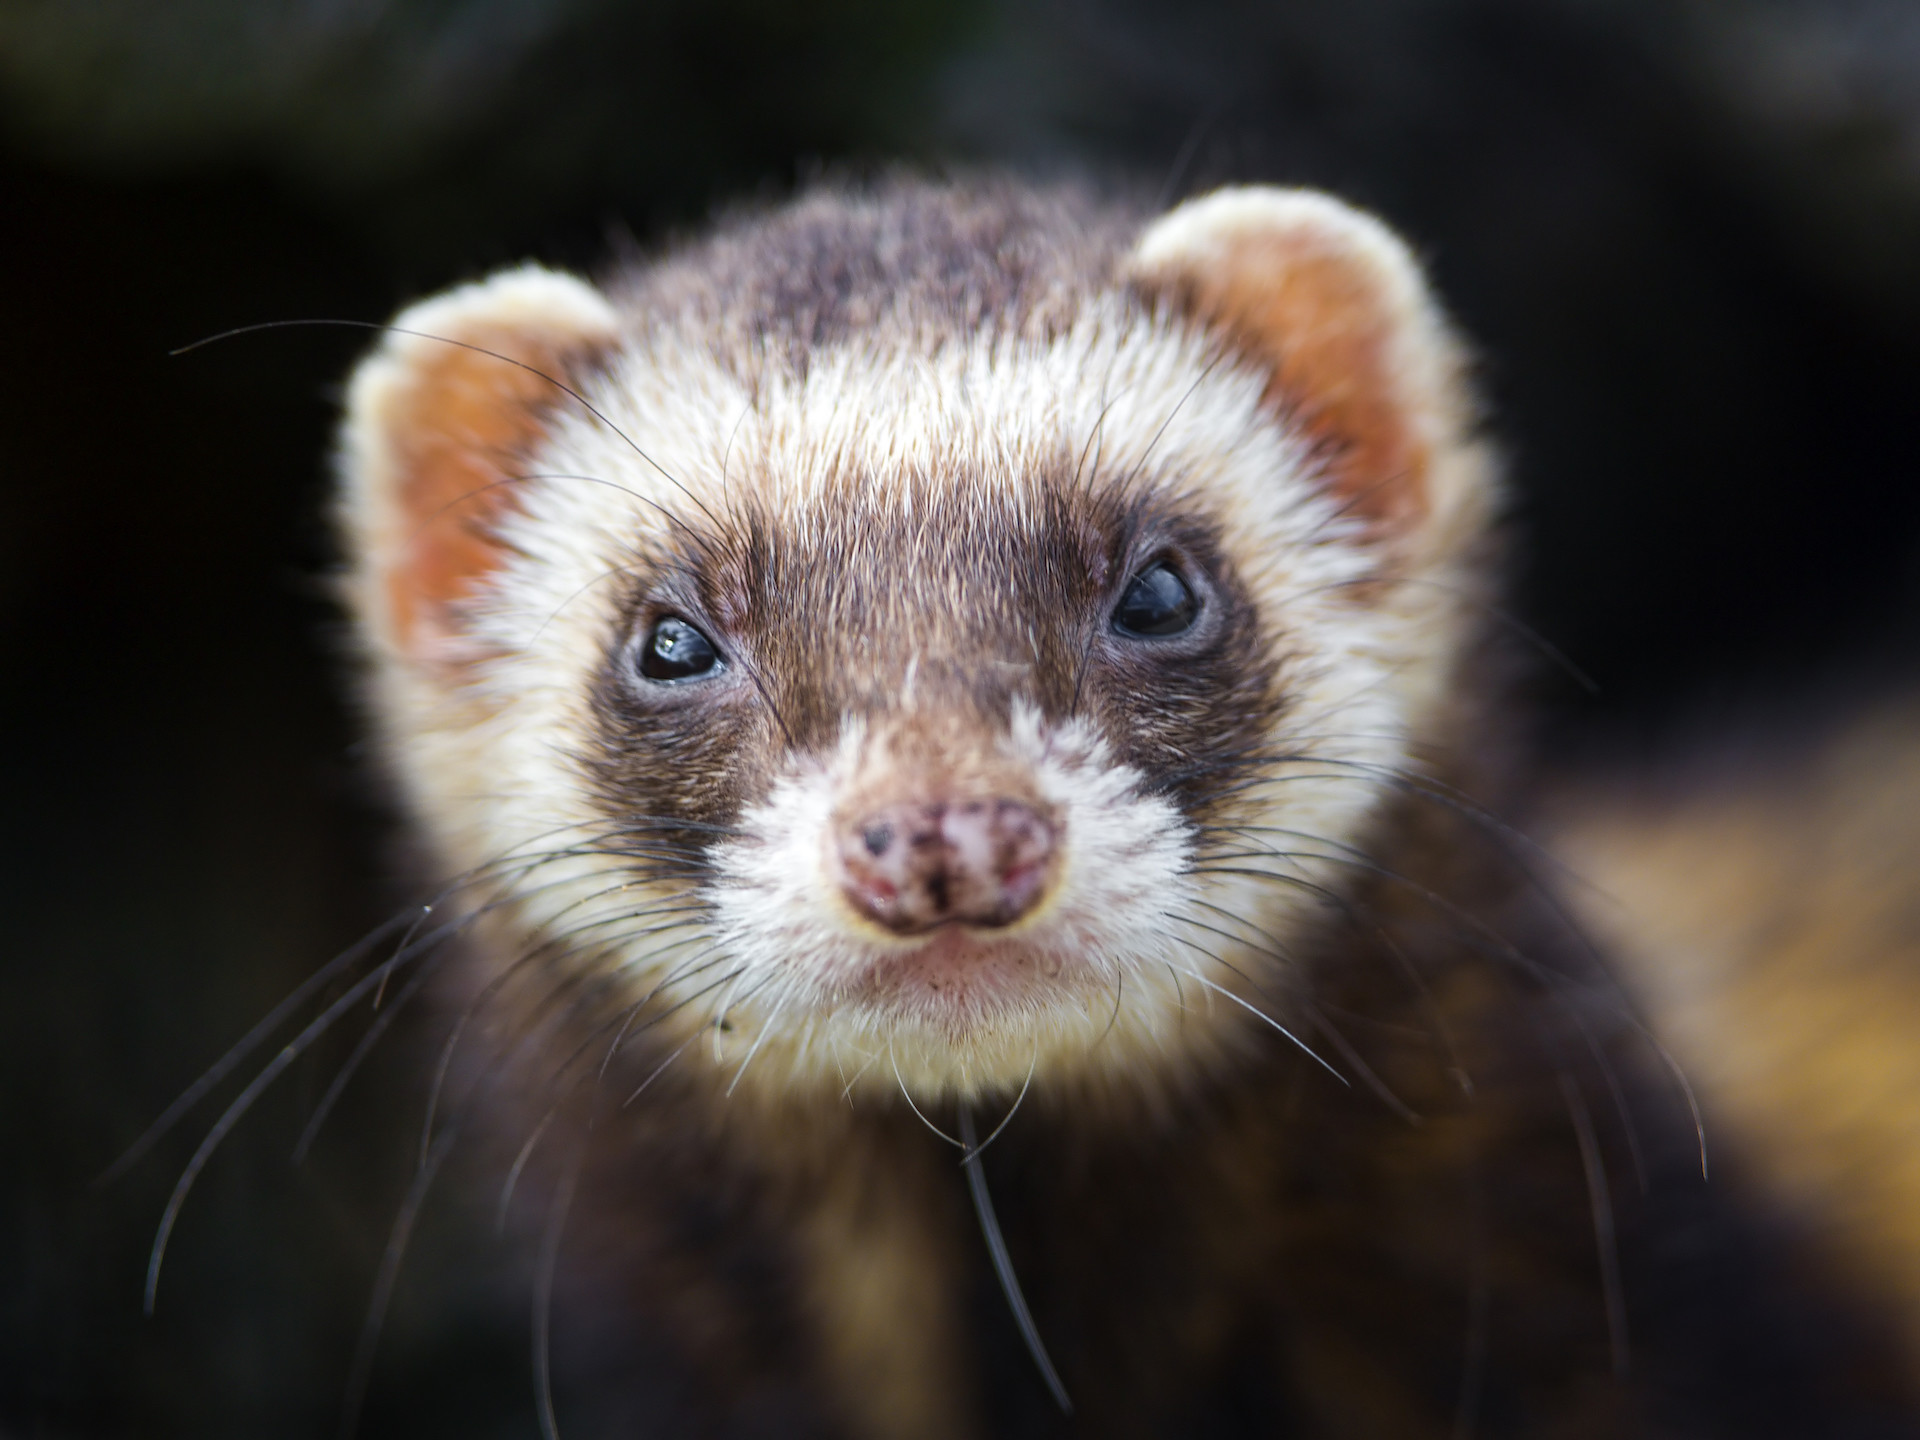 Res: 1920x1440, Endangered ferrets are being saved by drones that drop vaccine-laced M&Ms |  TechCrunch